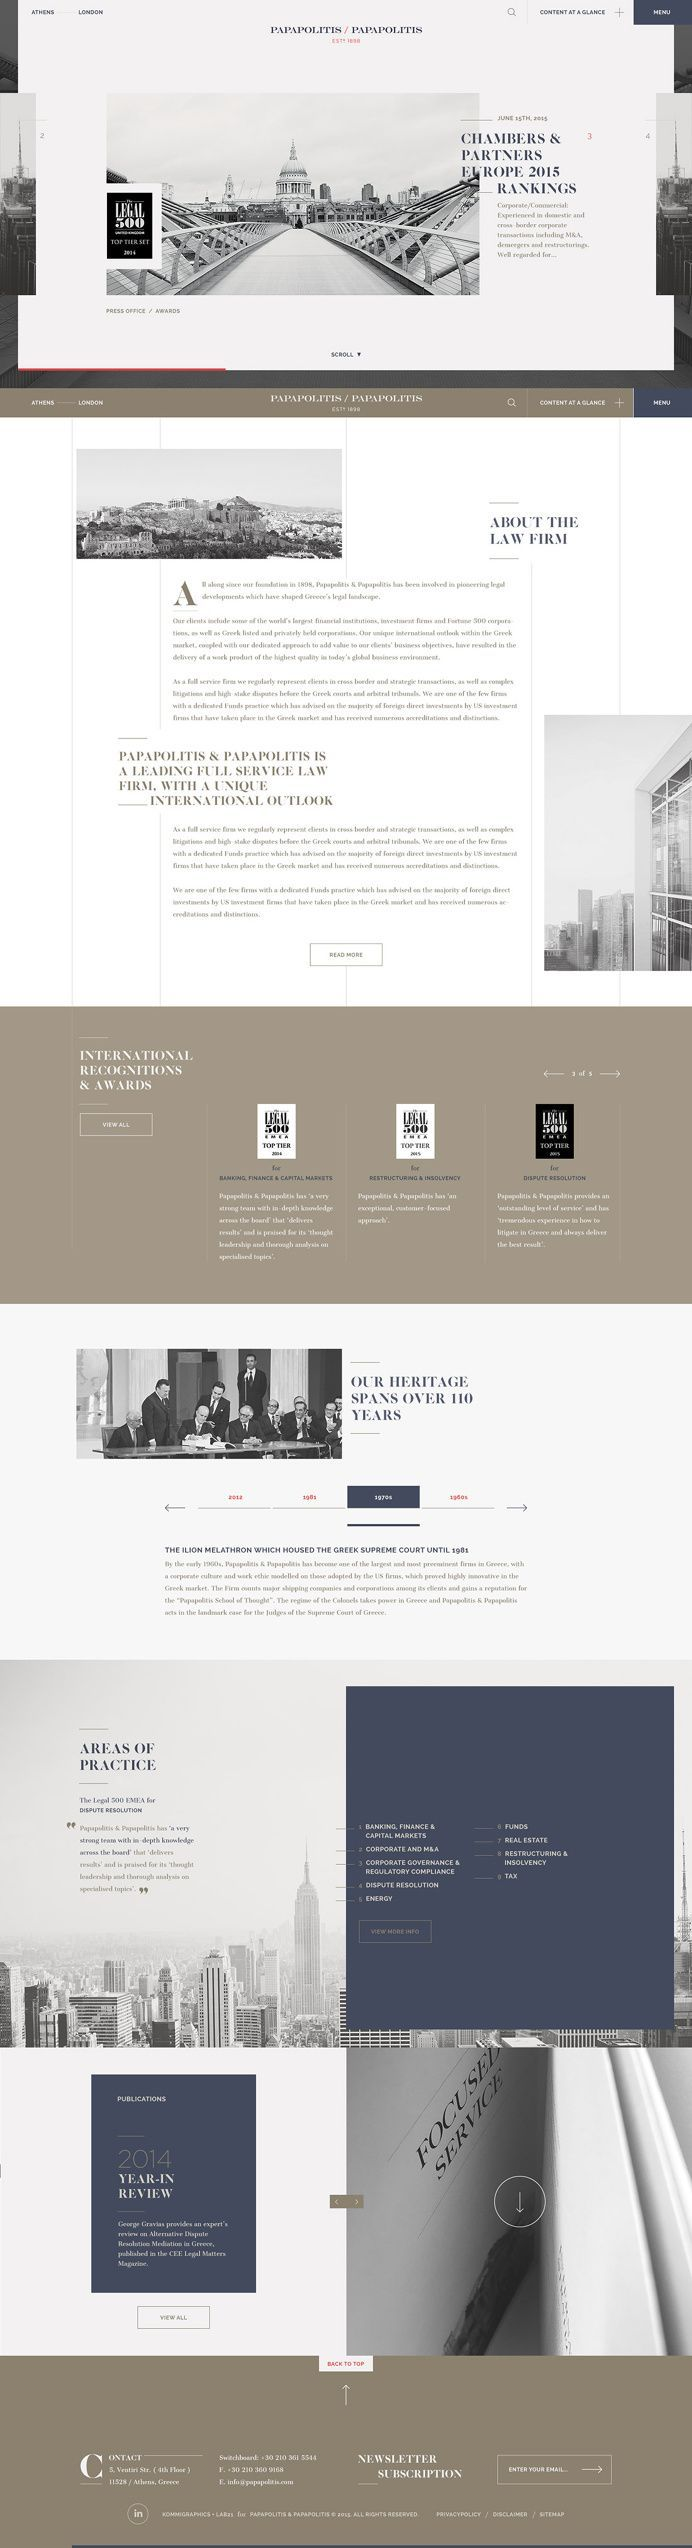 Papapolitis Website by Kommigraphics. If you're a user experience professional, listen to The UX Blog Podcast on iTunes.